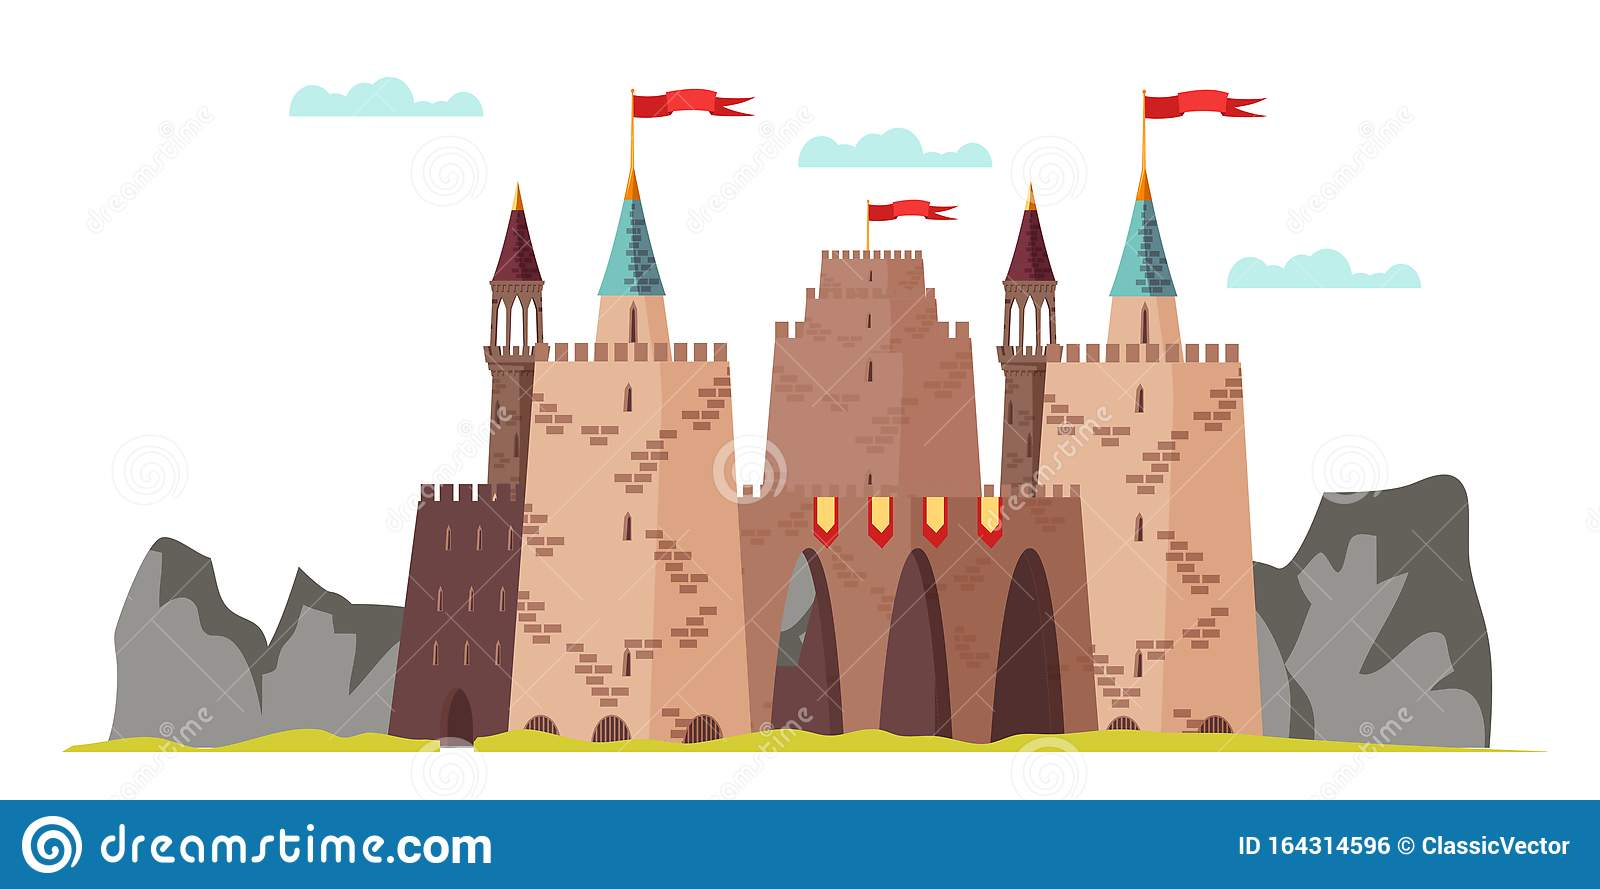 Middle Age Castle Flat Vector Illustration Isolated On